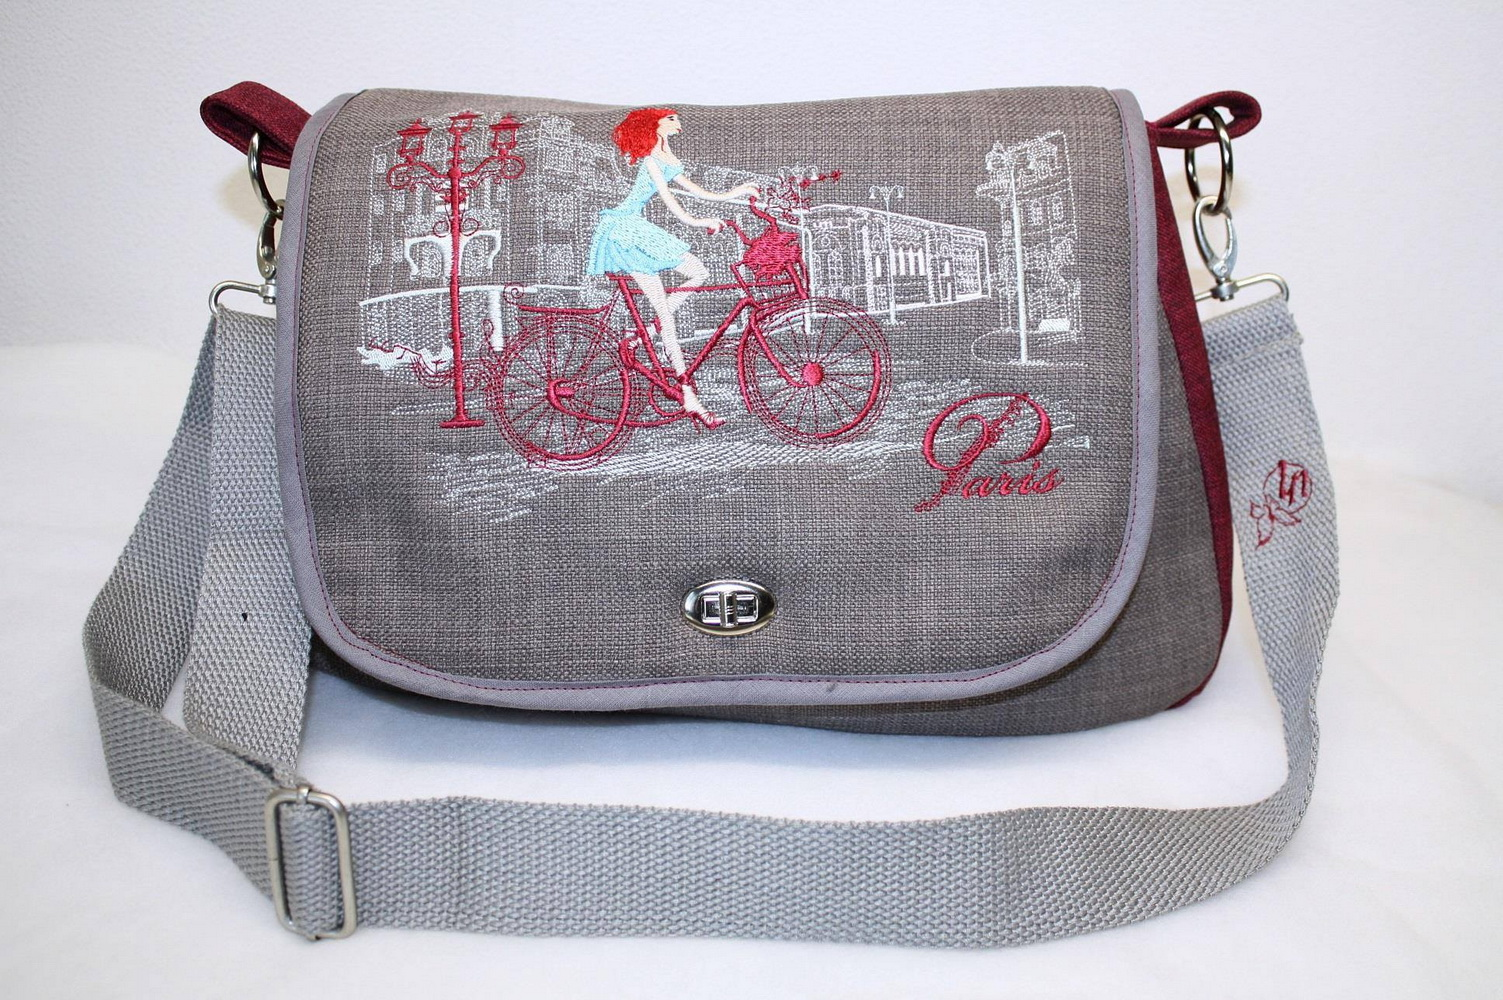 Paris travel embroidery design on bag